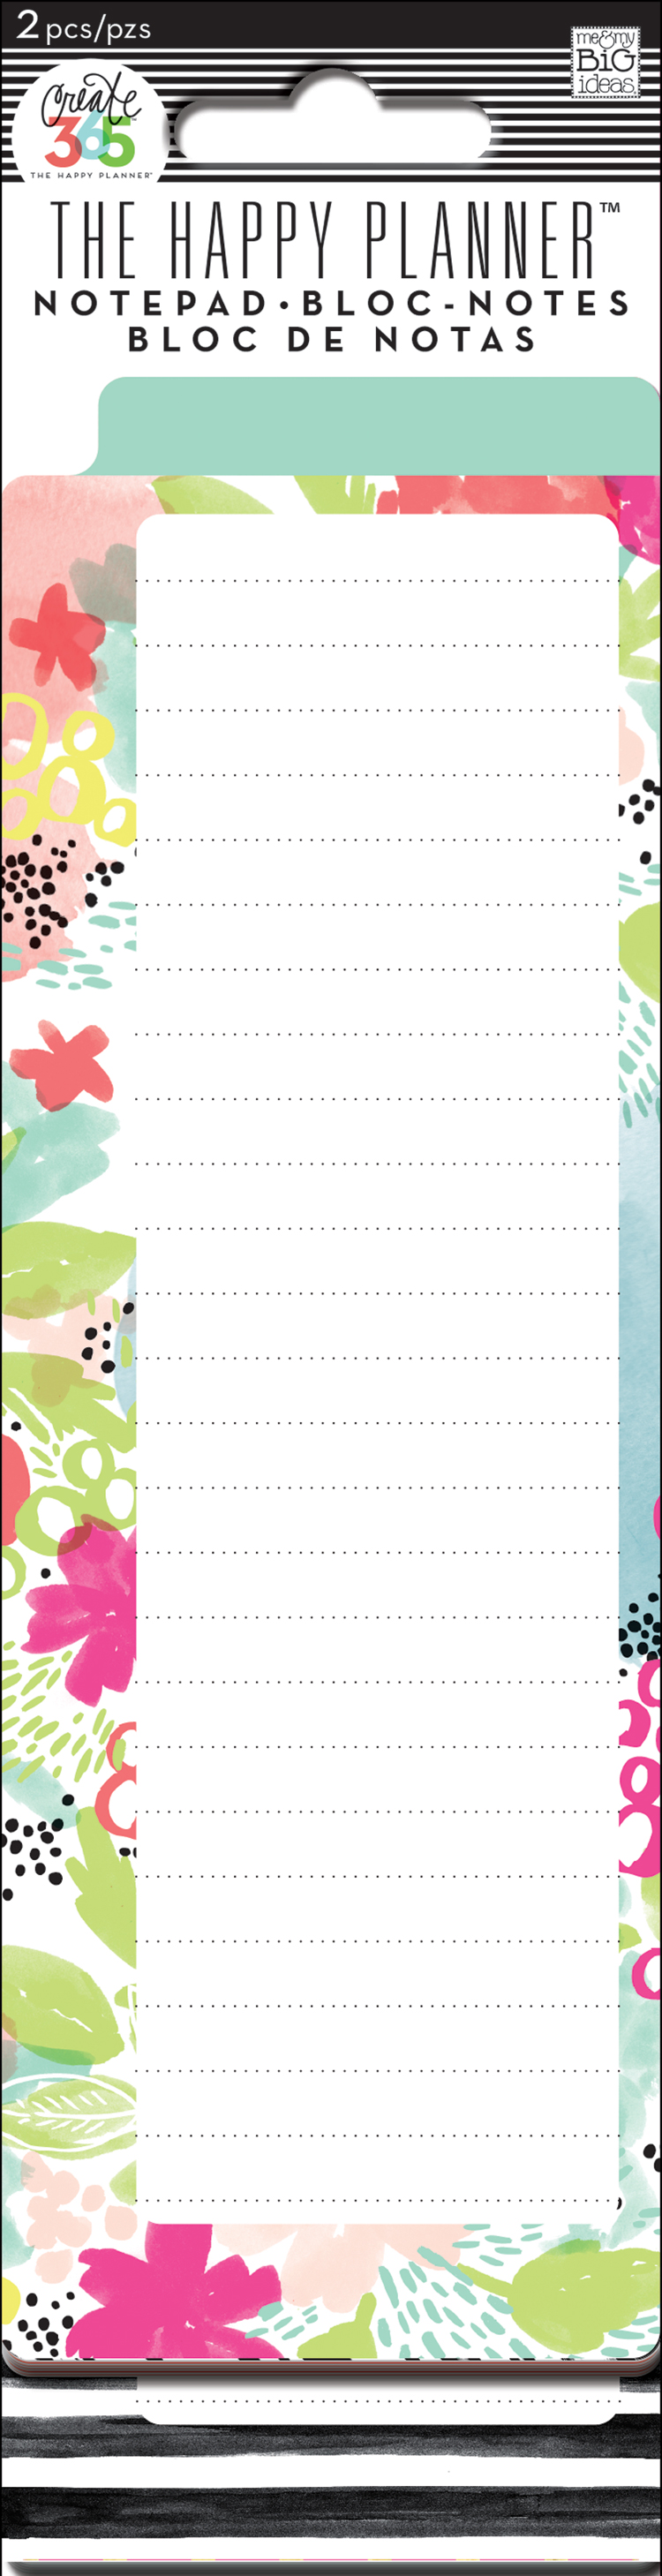 'Live Loud' List Pad for The Happy Planner™ | me & my BIG ideas.jpg